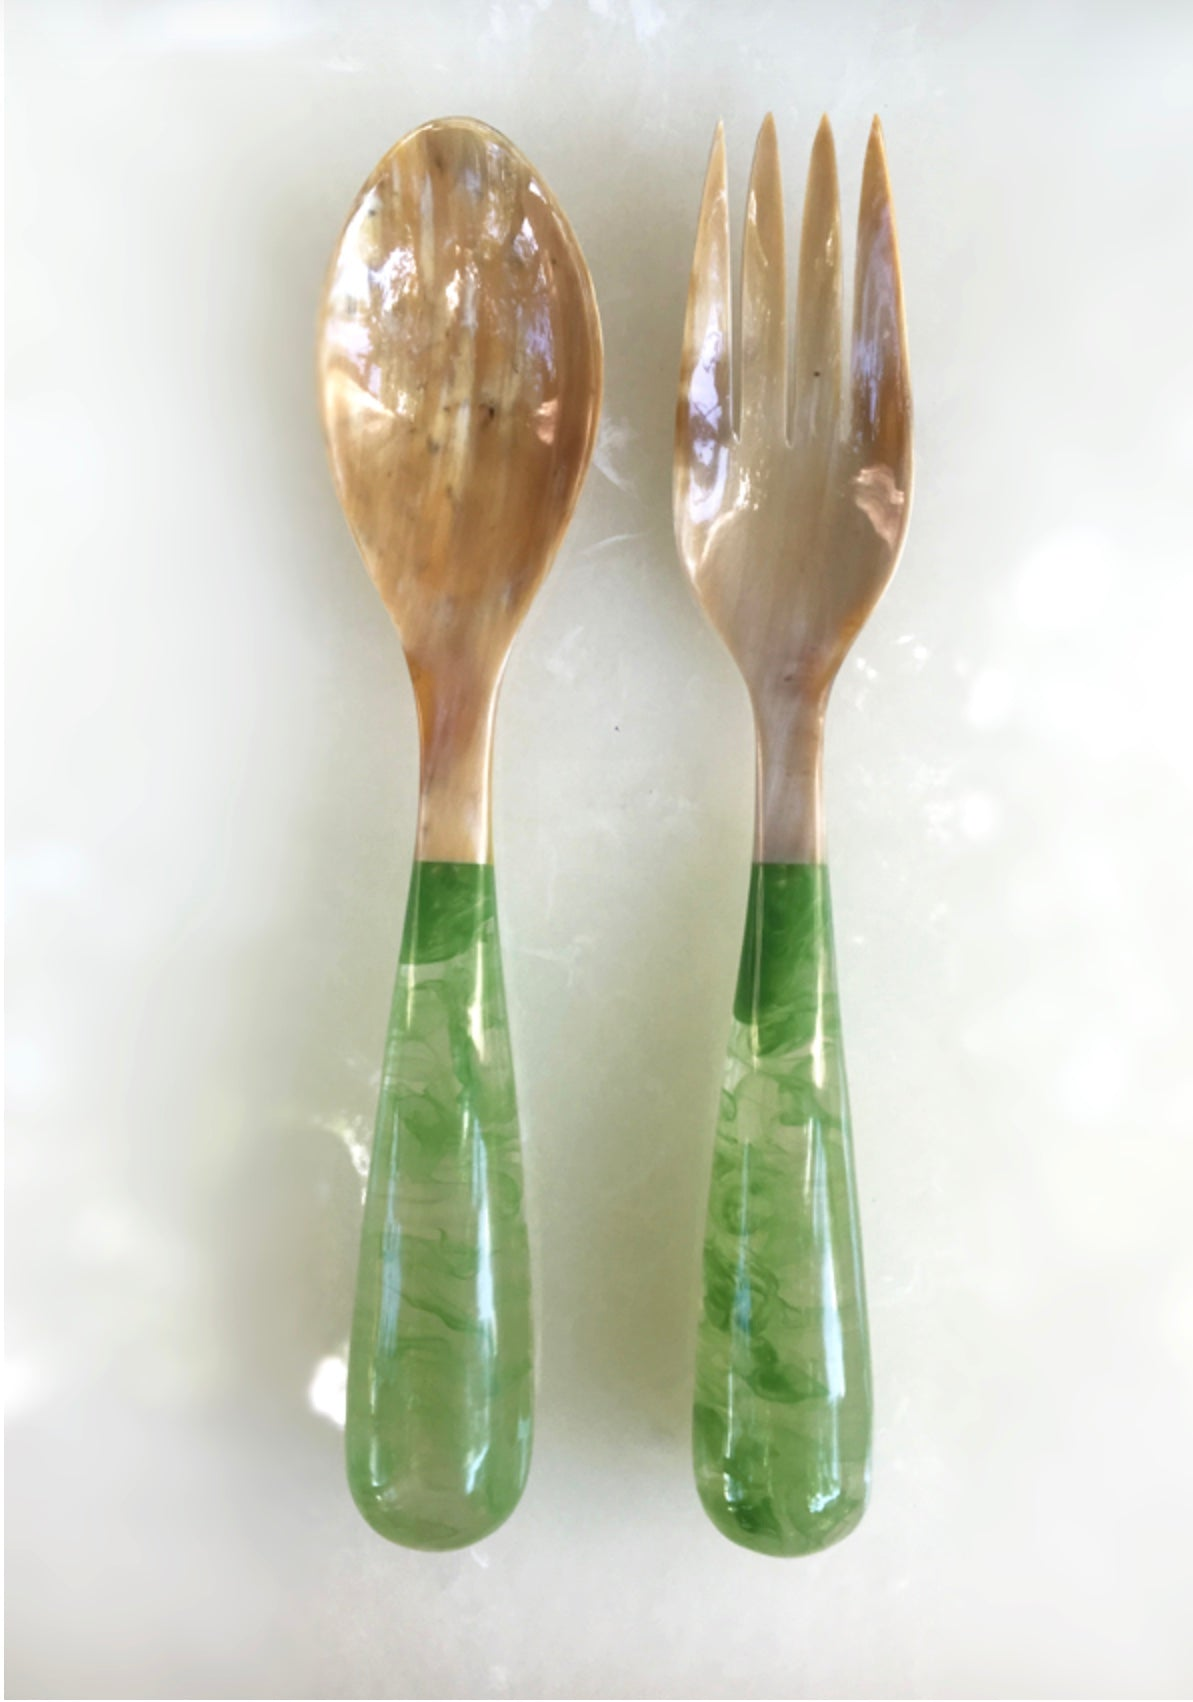 Grand Slam Salad Servers Set of 2 - Celadon